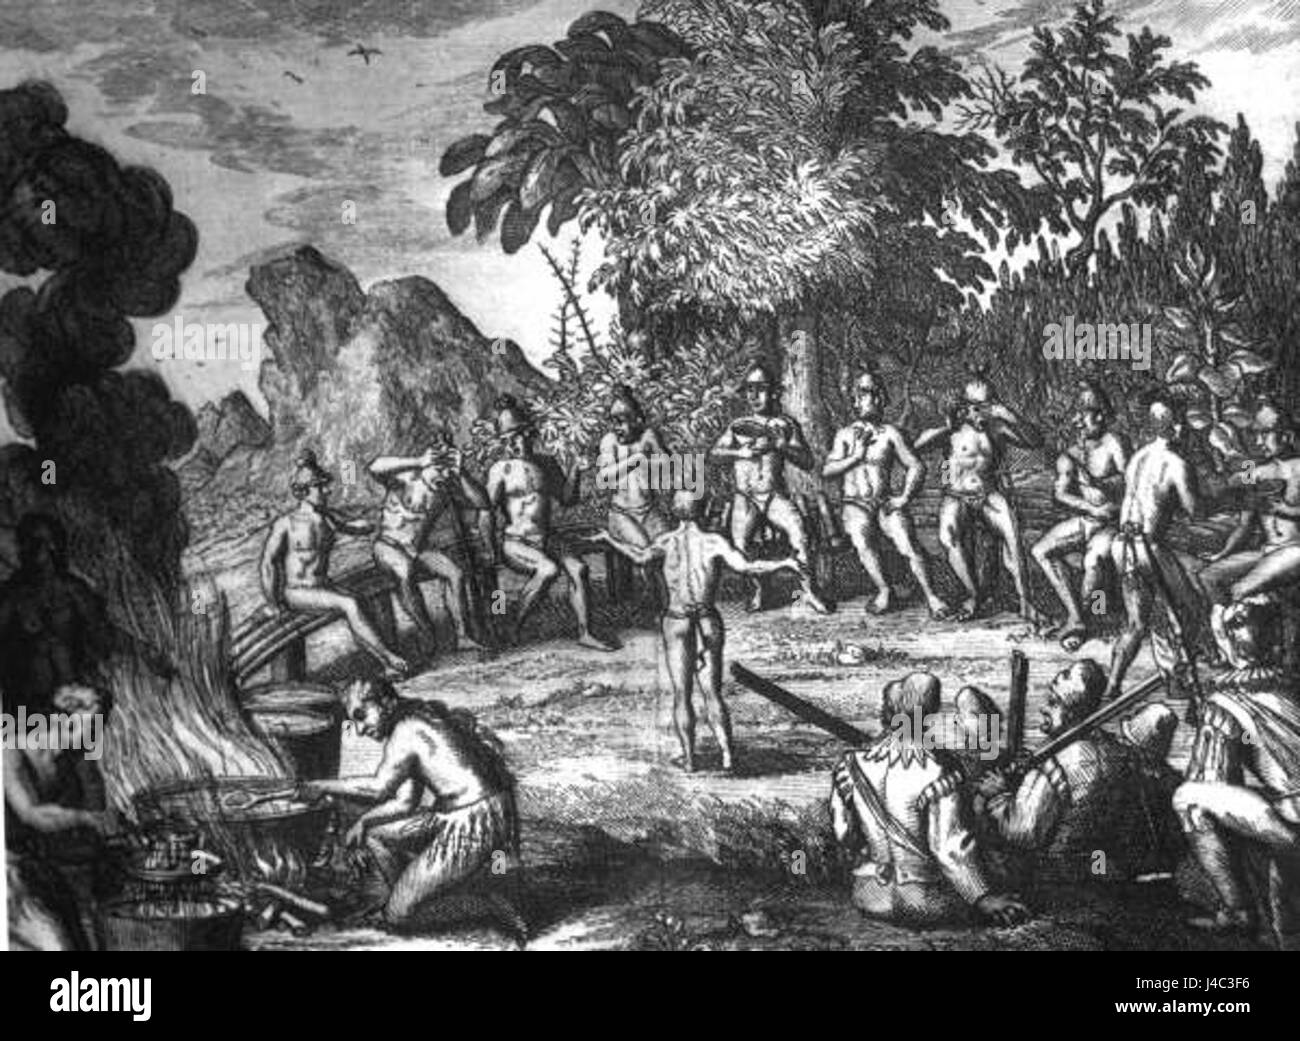 Rc11024 Timucua Indians at a feast drawing possibly by Le Moyne de Morgues Stock Photo